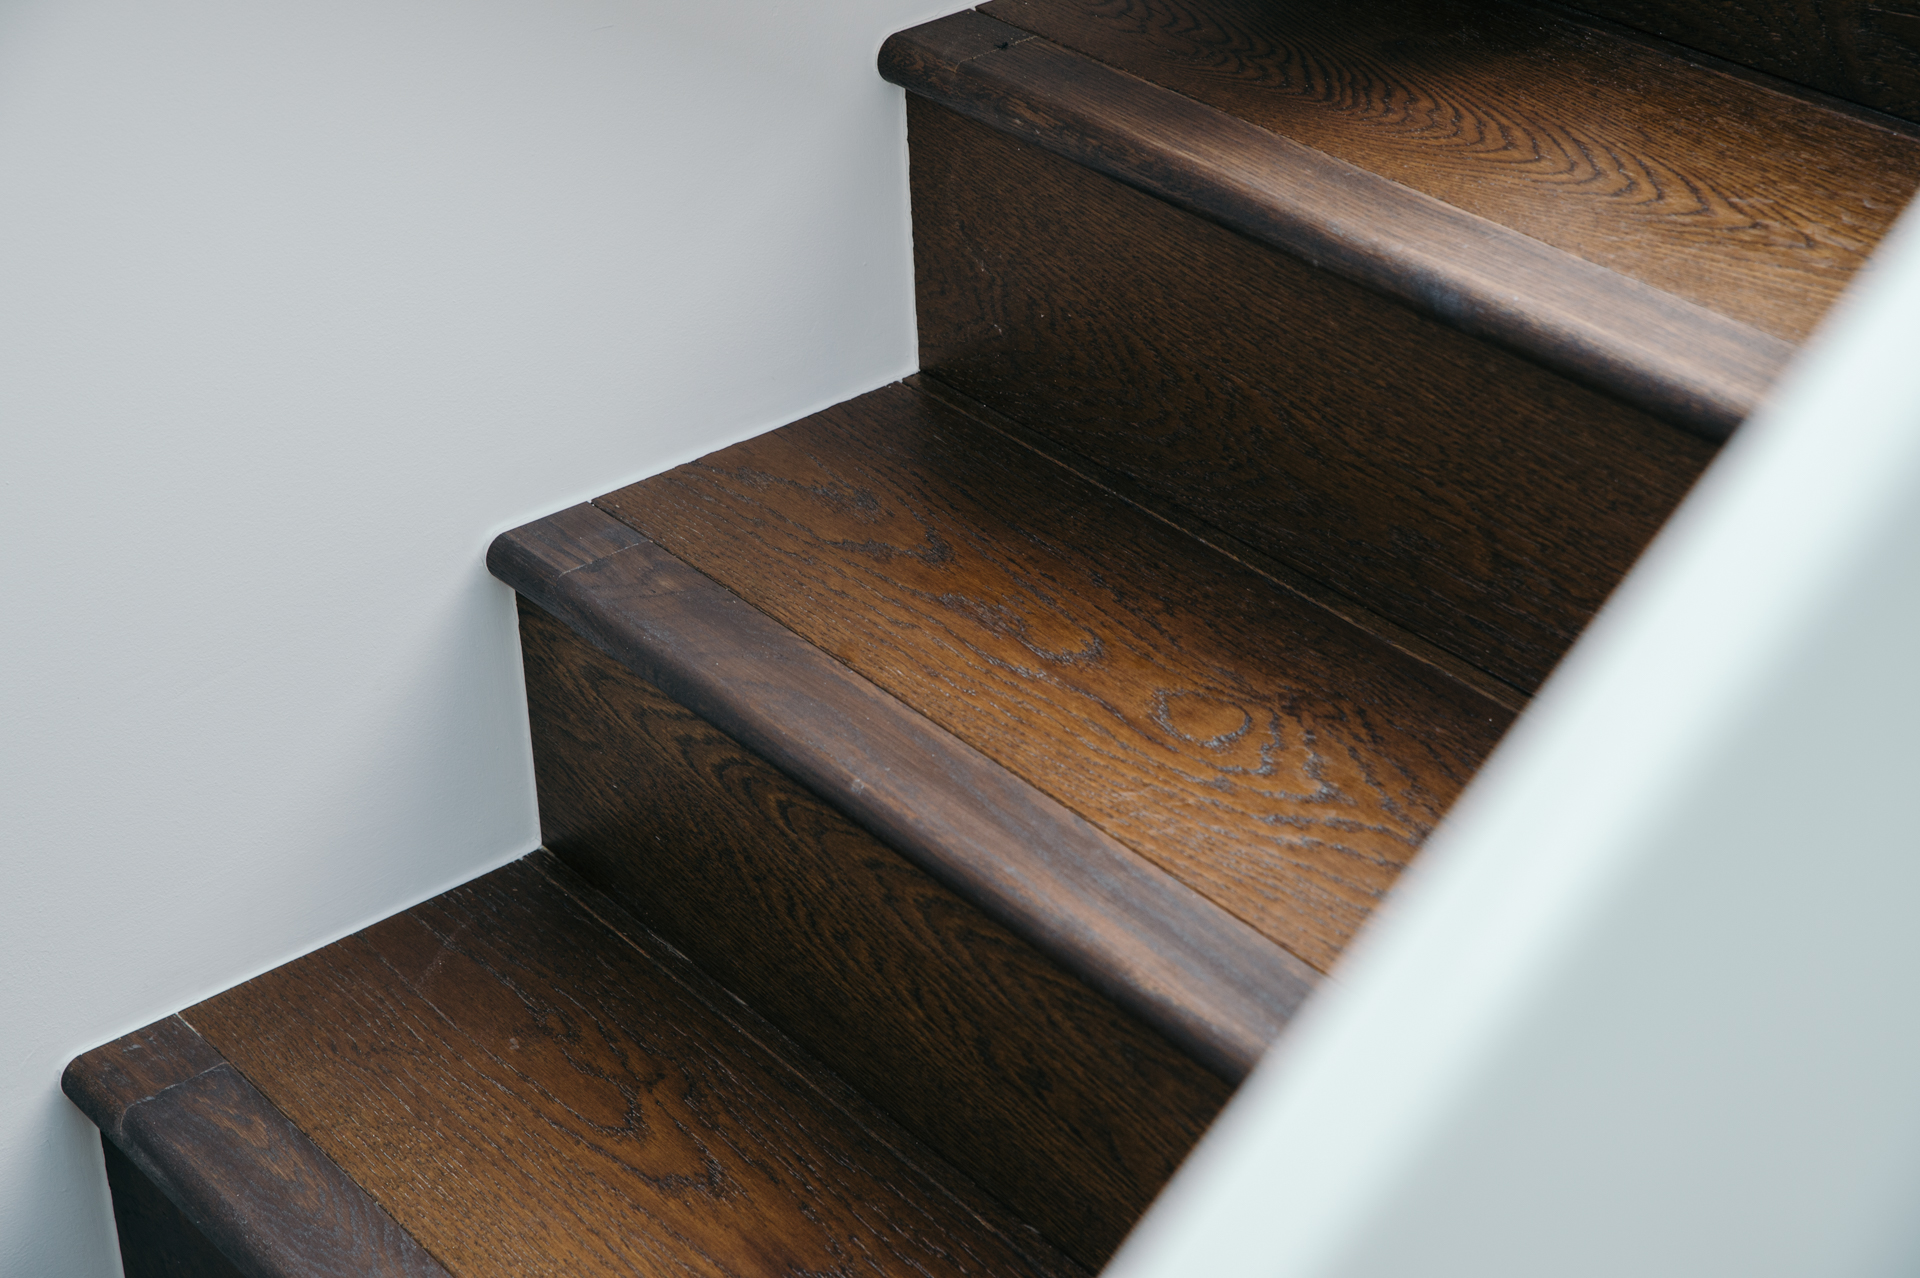 brown wooden stairs closeup image